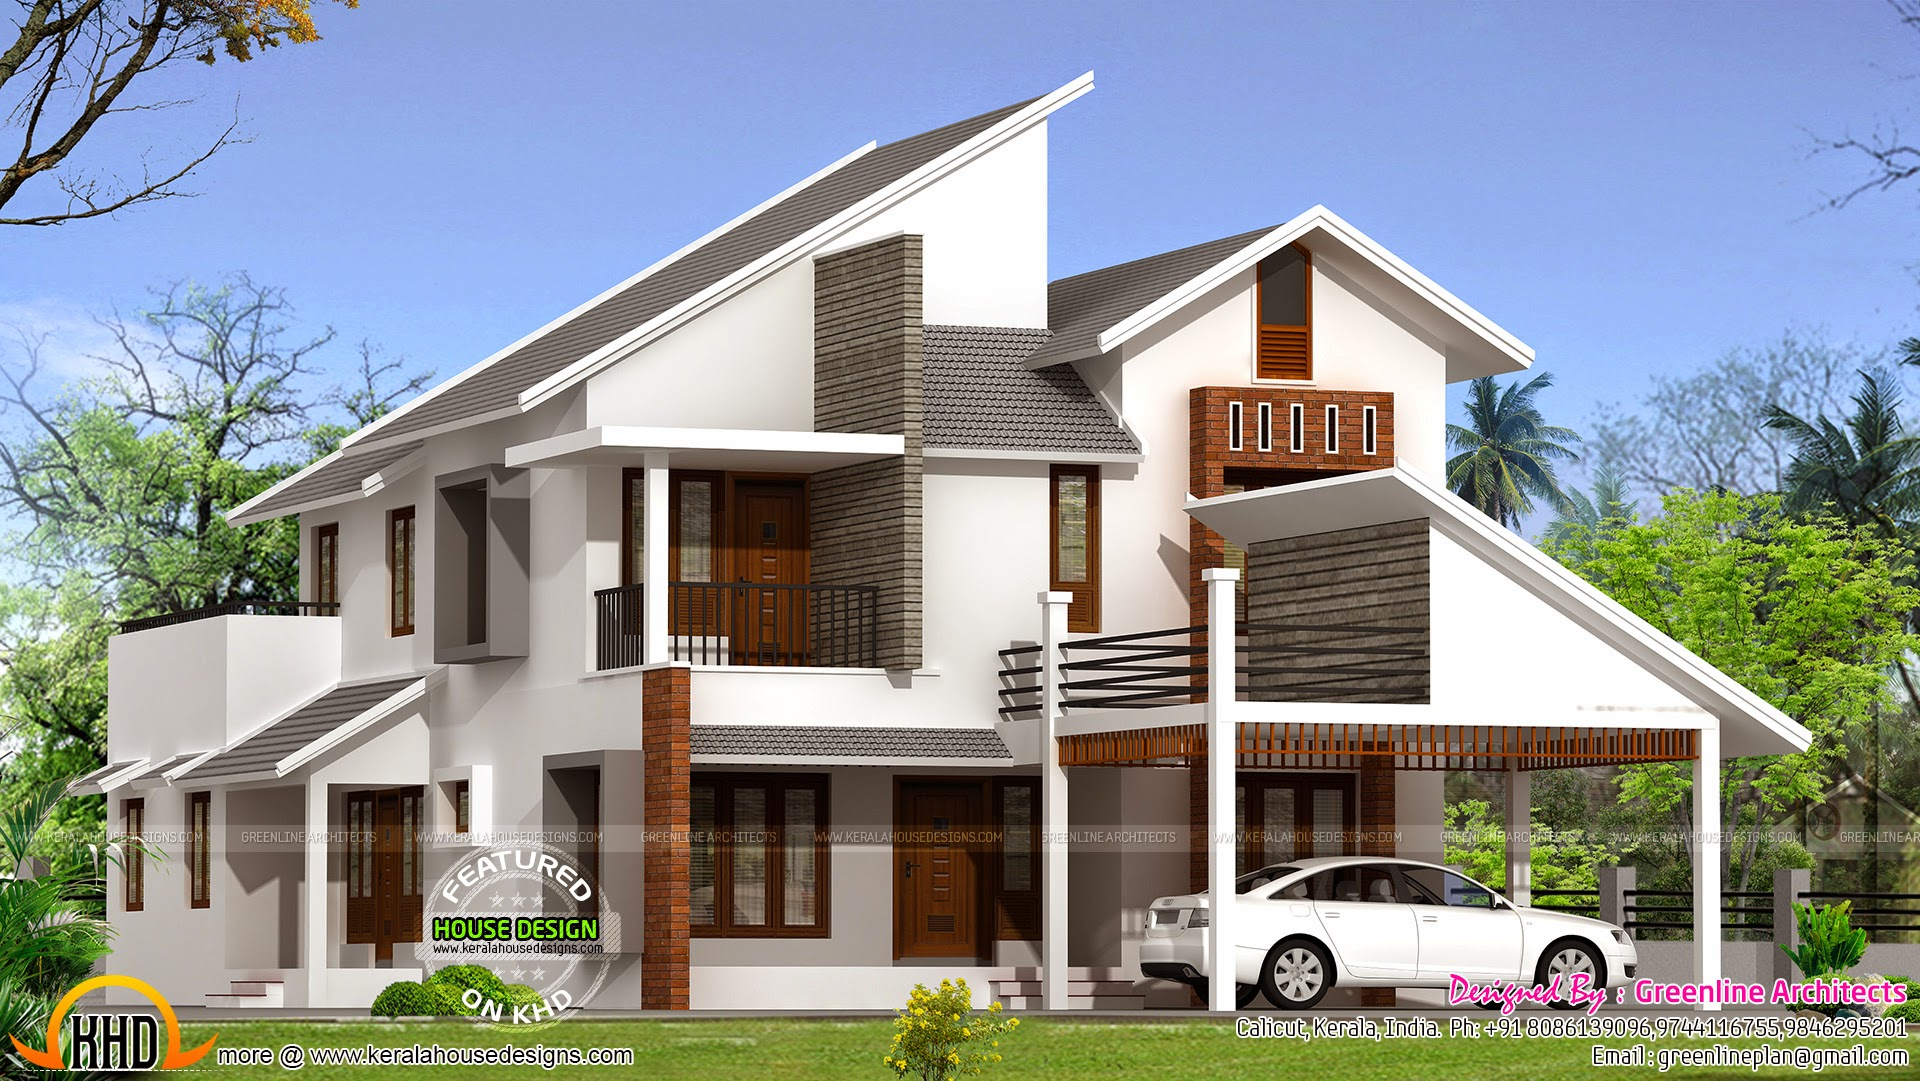 New modern house plan kerala home design and floor plans for New house blueprints